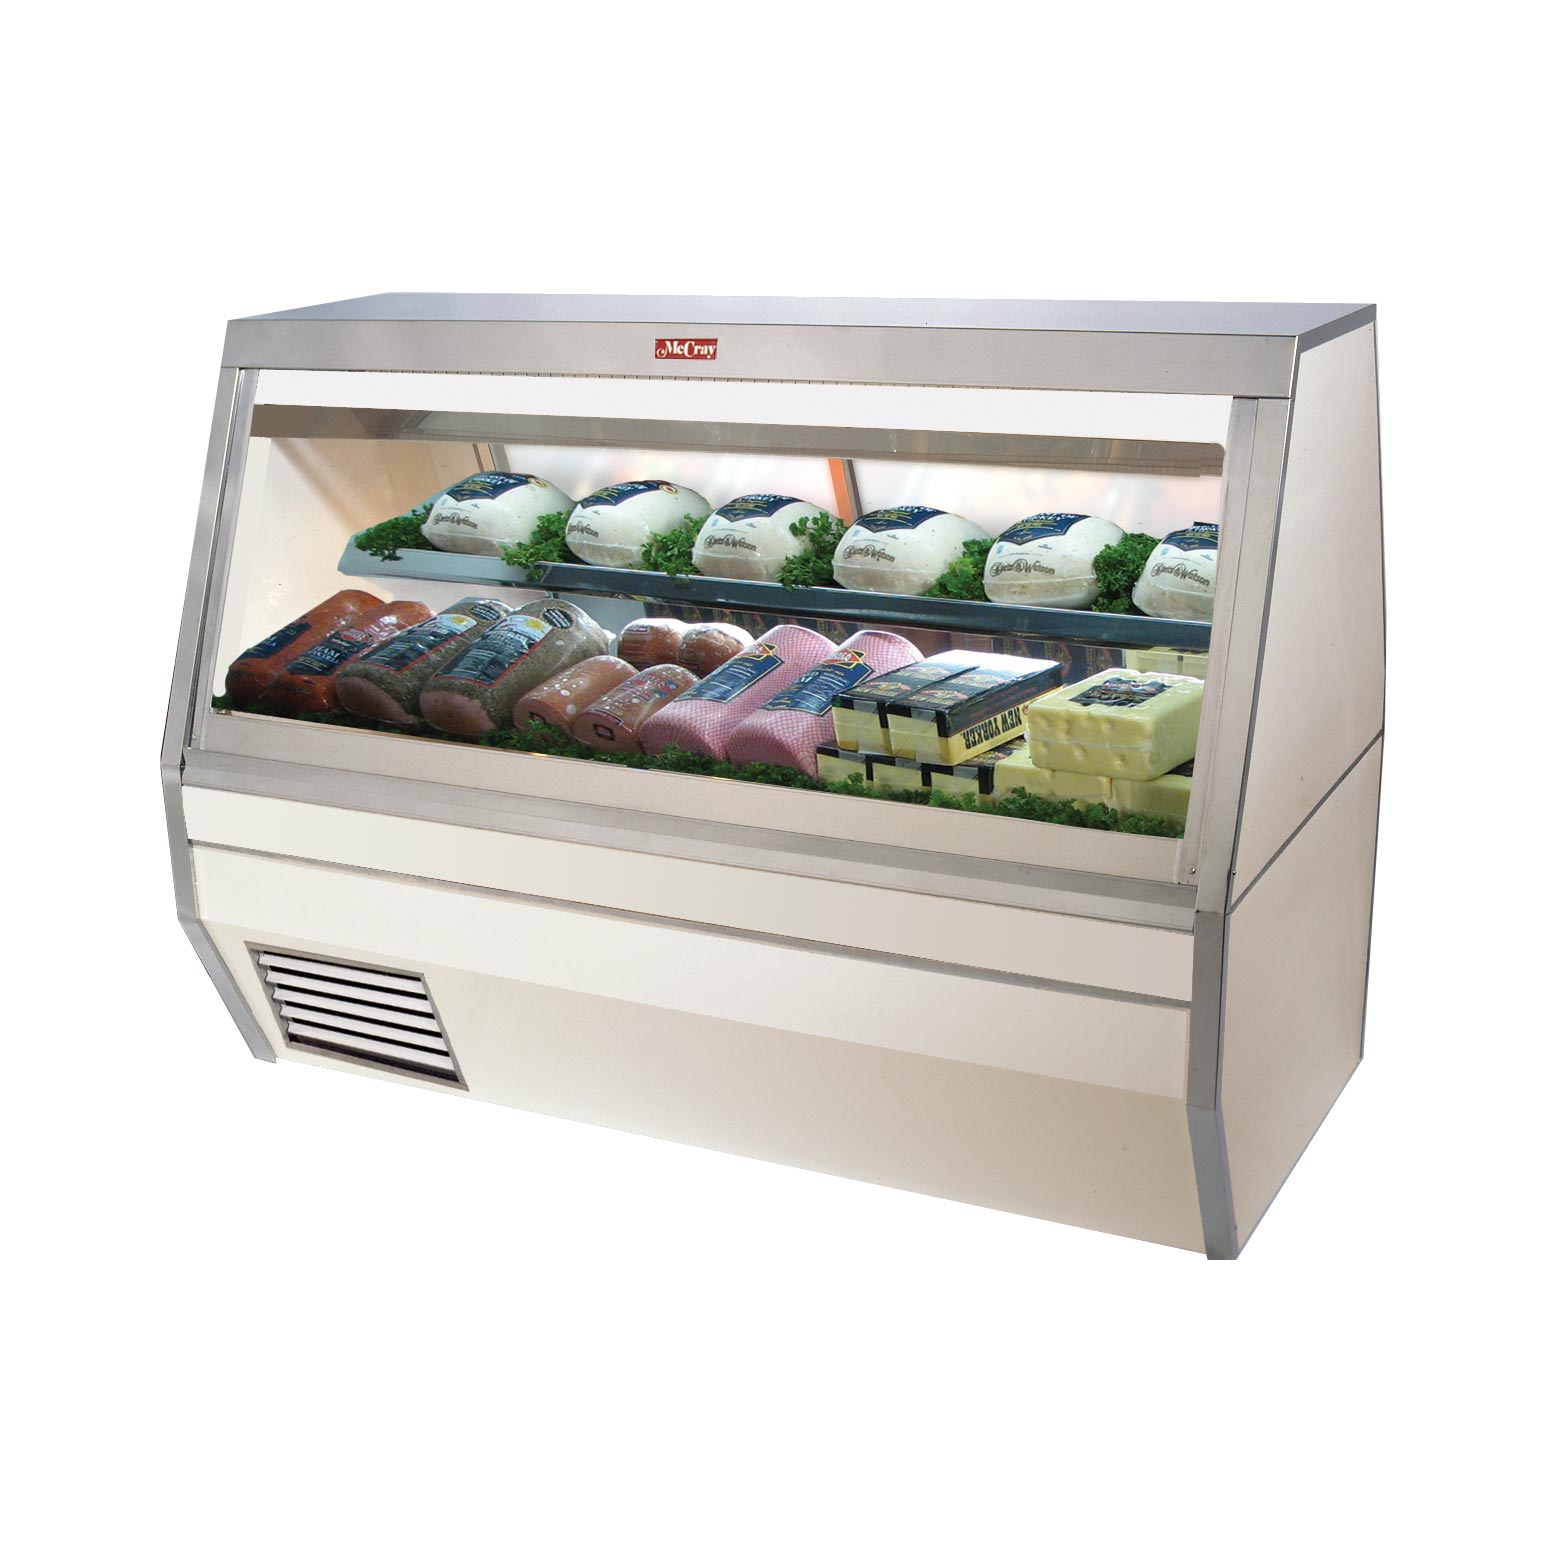 Howard-McCray R-CDS35-10-S-LED display case, refrigerated deli